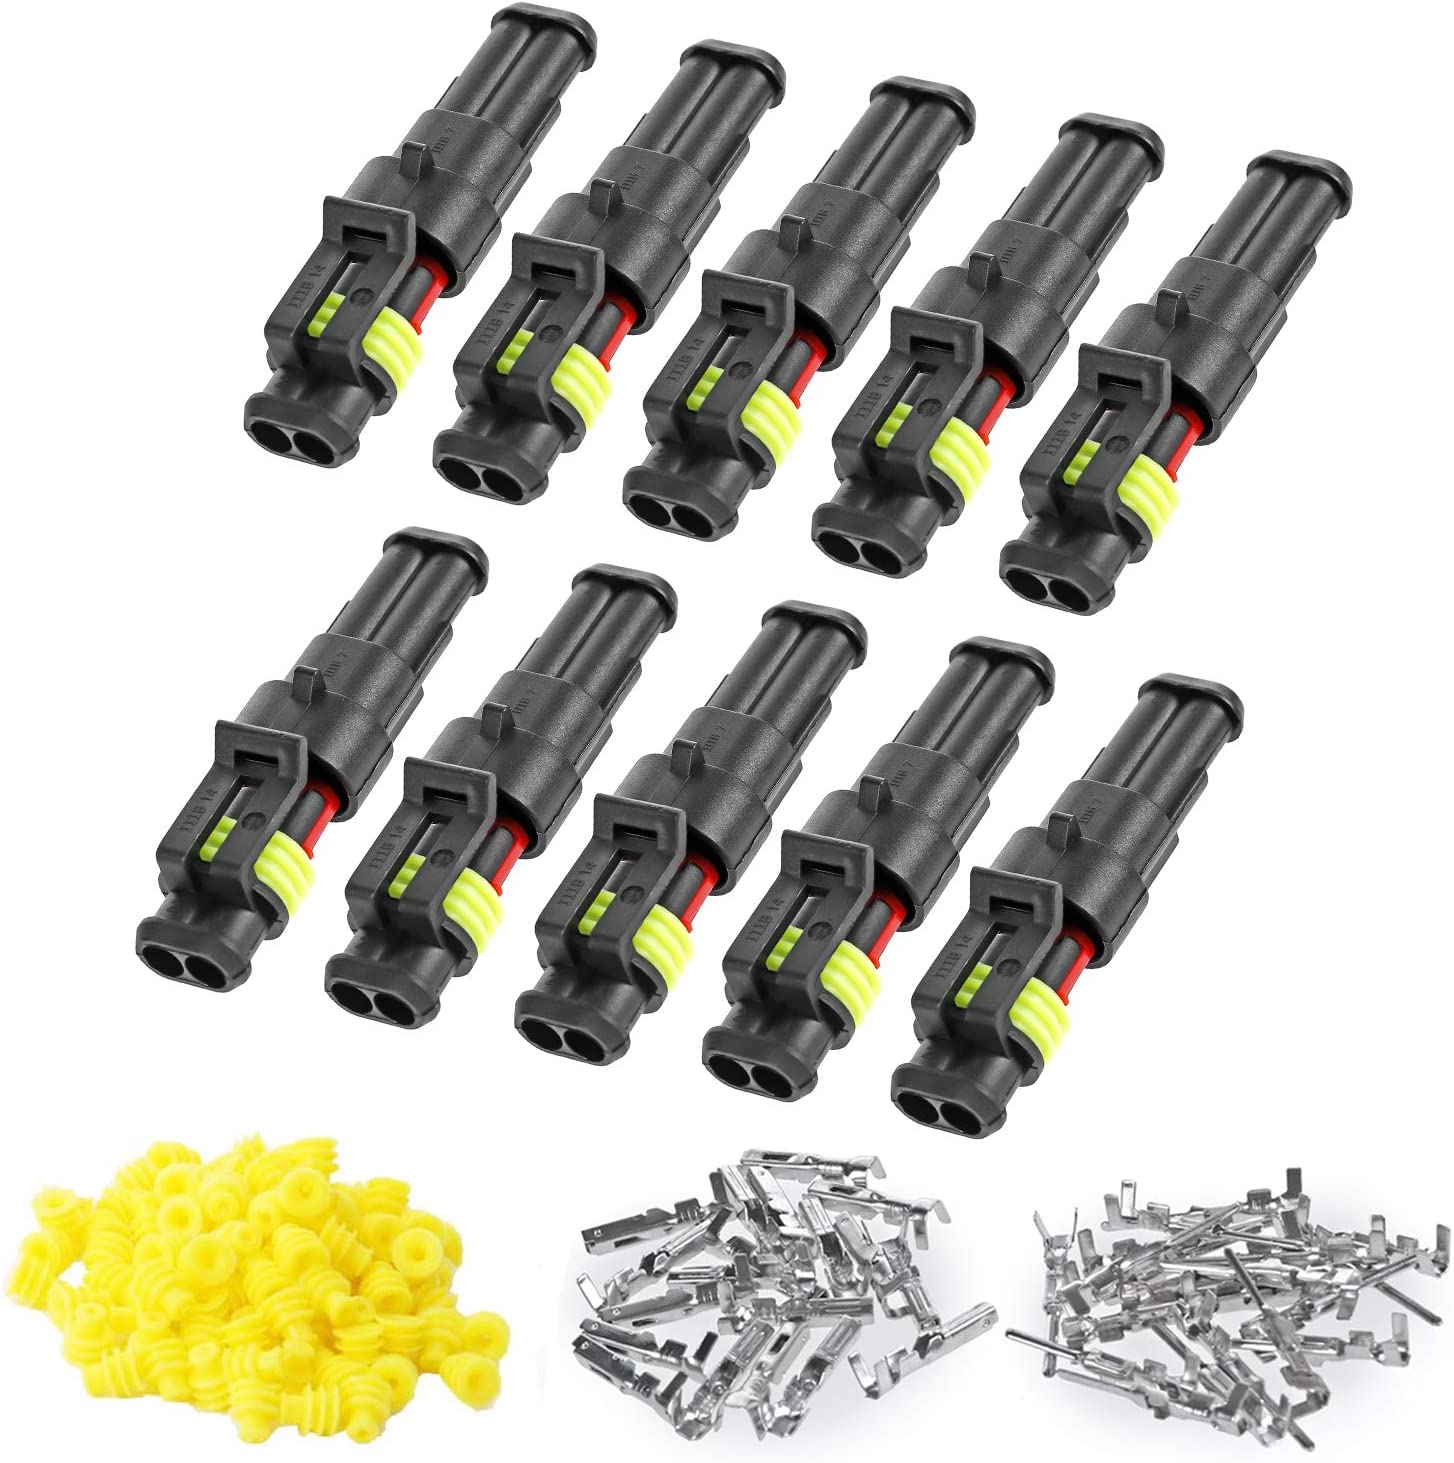 Deluxe ZUOZE 10 Many popular brands Kit 2 Pin Connector 20-16 Electrical AWG Au Waterproof